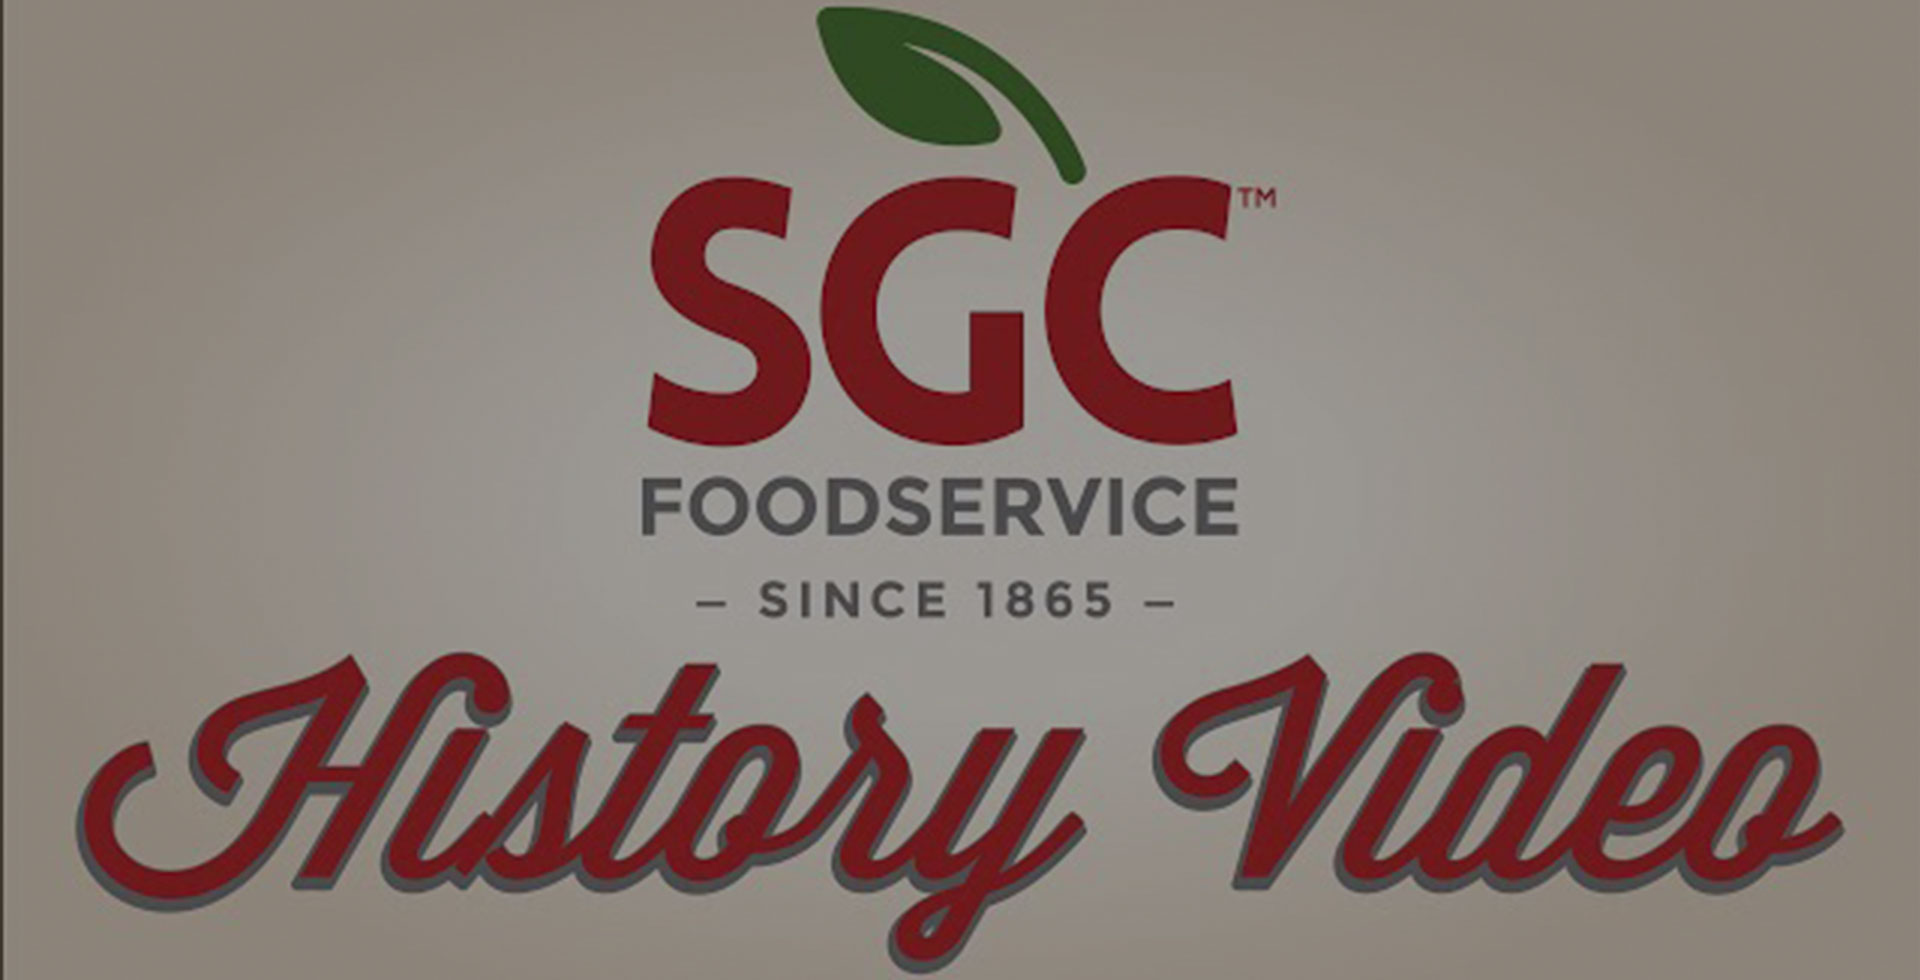 SGC Foodservice History Video Background